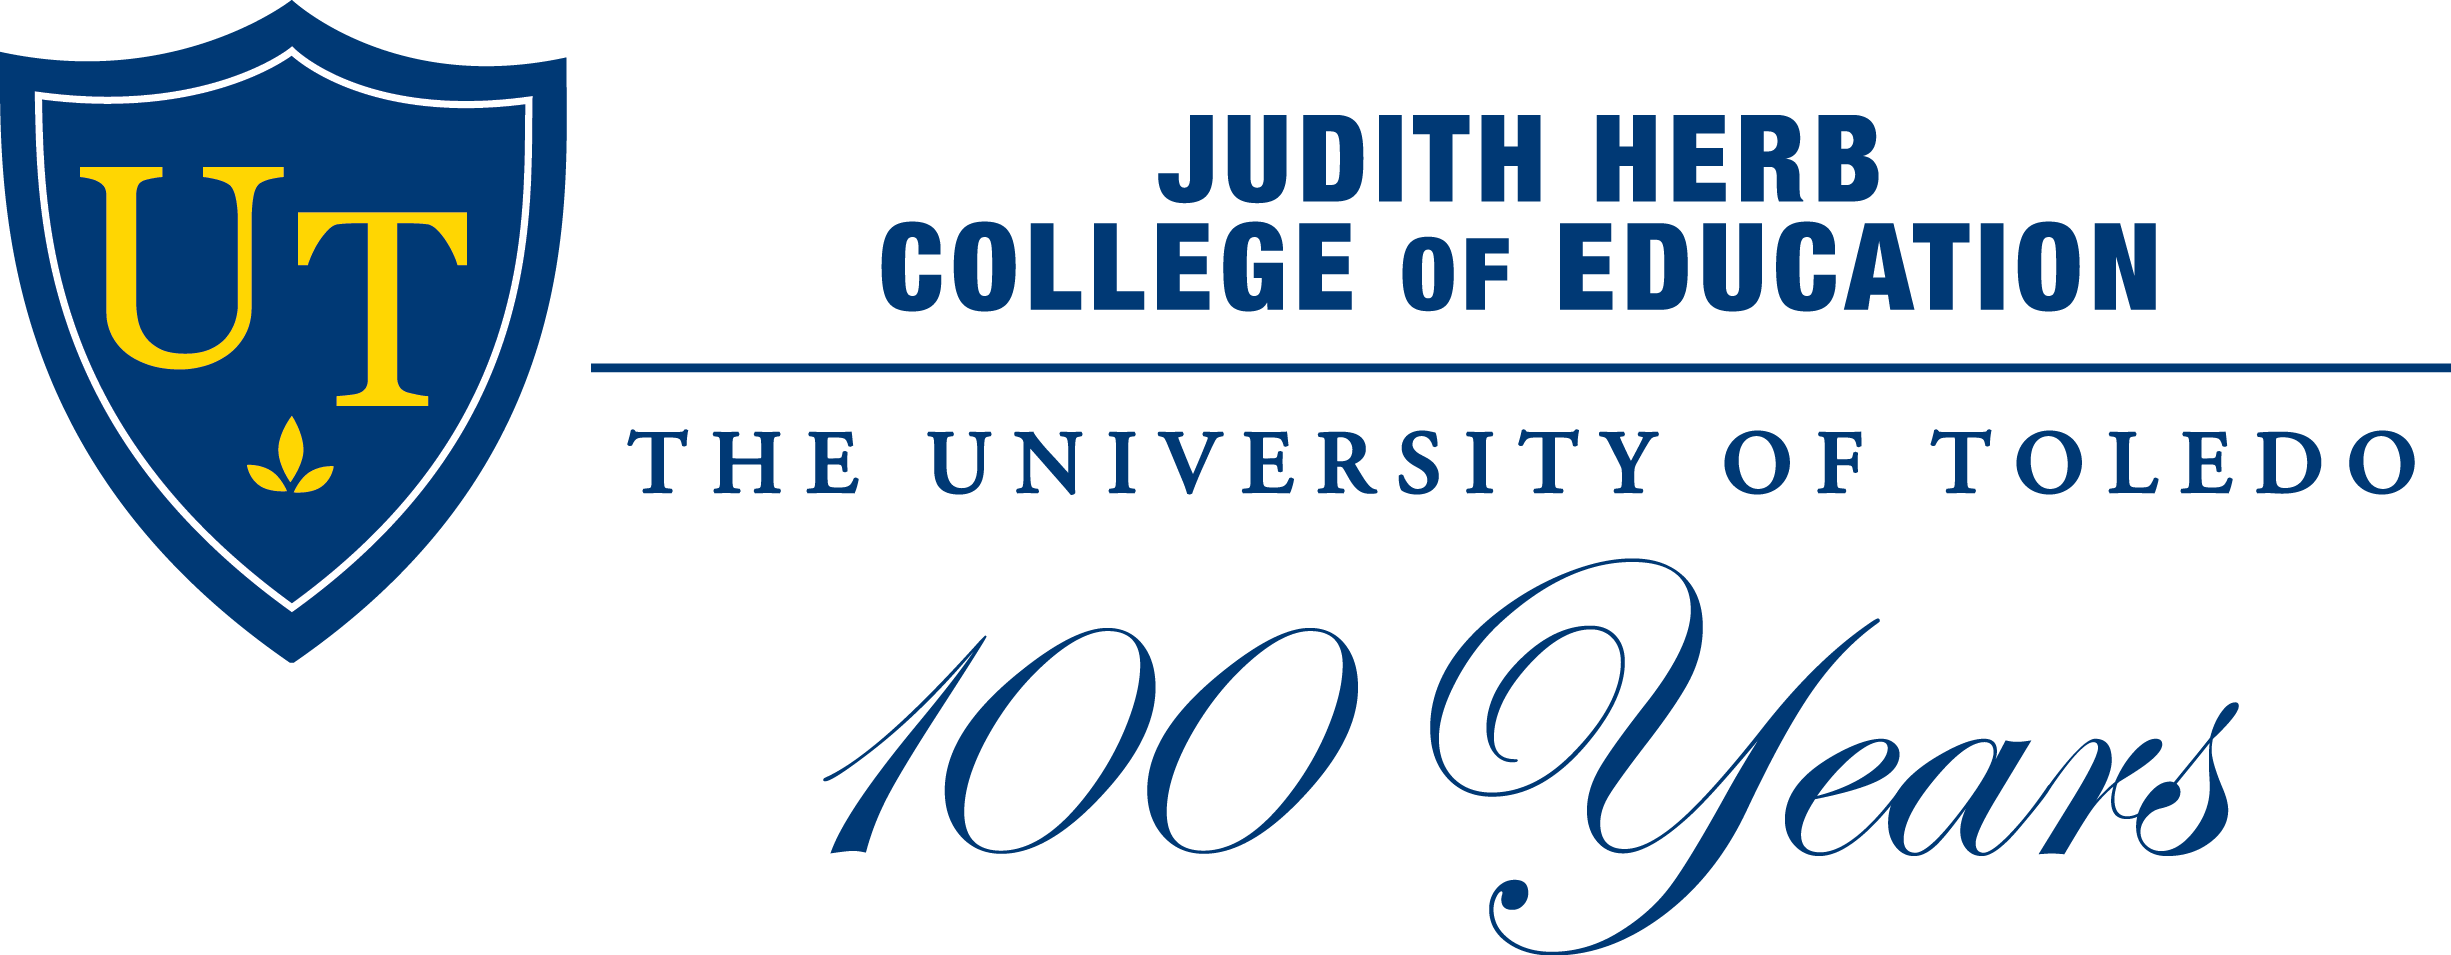 Judith Herb College of Education - Celebrating 100 Years